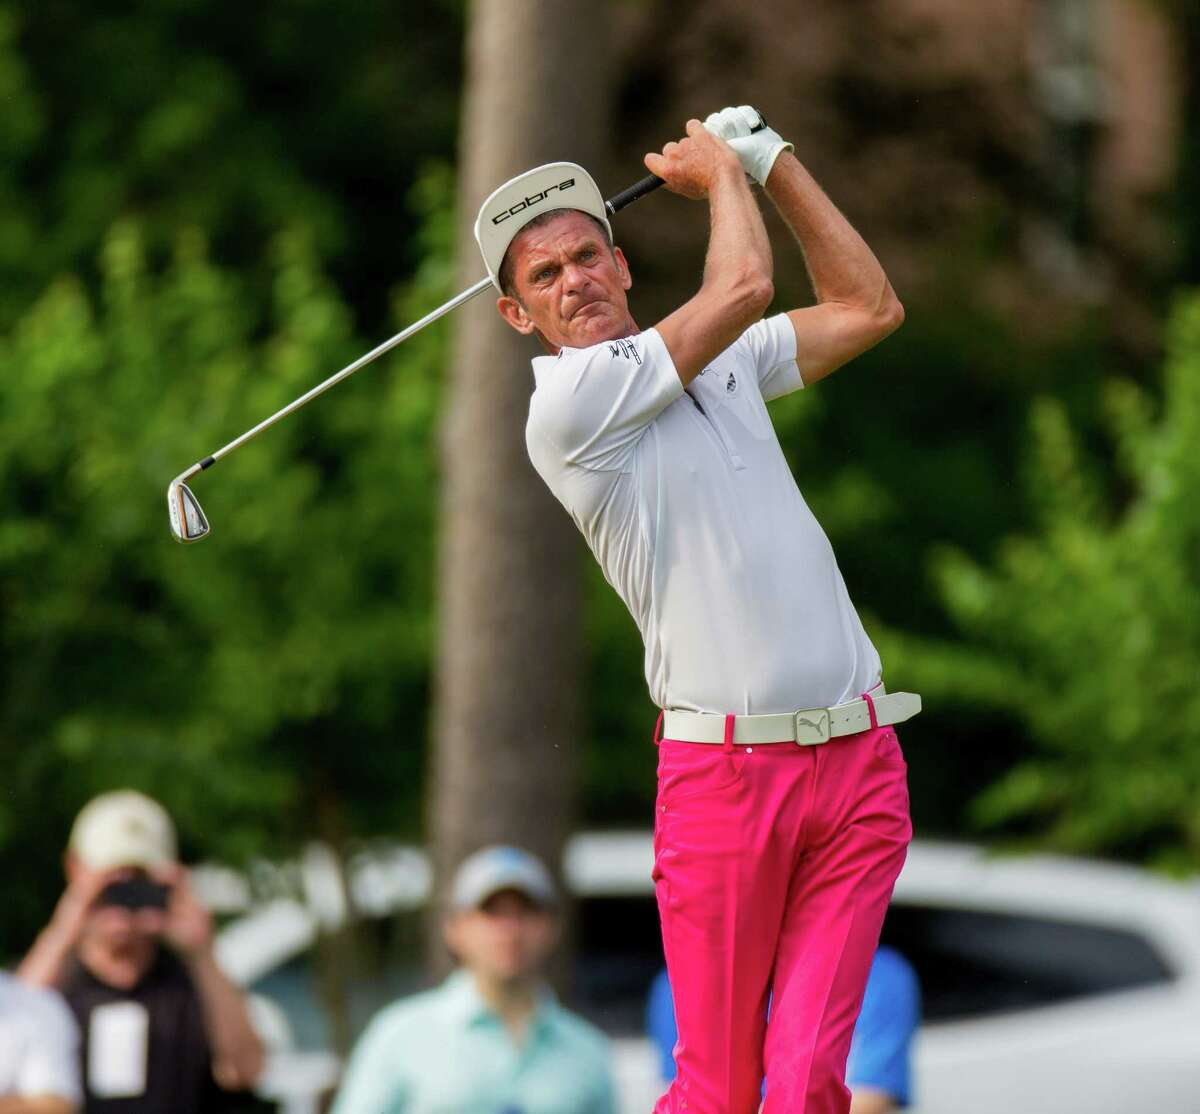 Golfer Jesper Parnevik follow through on hole-17 during Round 3 of the Insperity Invitational Golf at the Woodlands Country Club, Sunday, May 8, 2016, in Houston. (Juan DeLeon / For the Houston Chronicle)